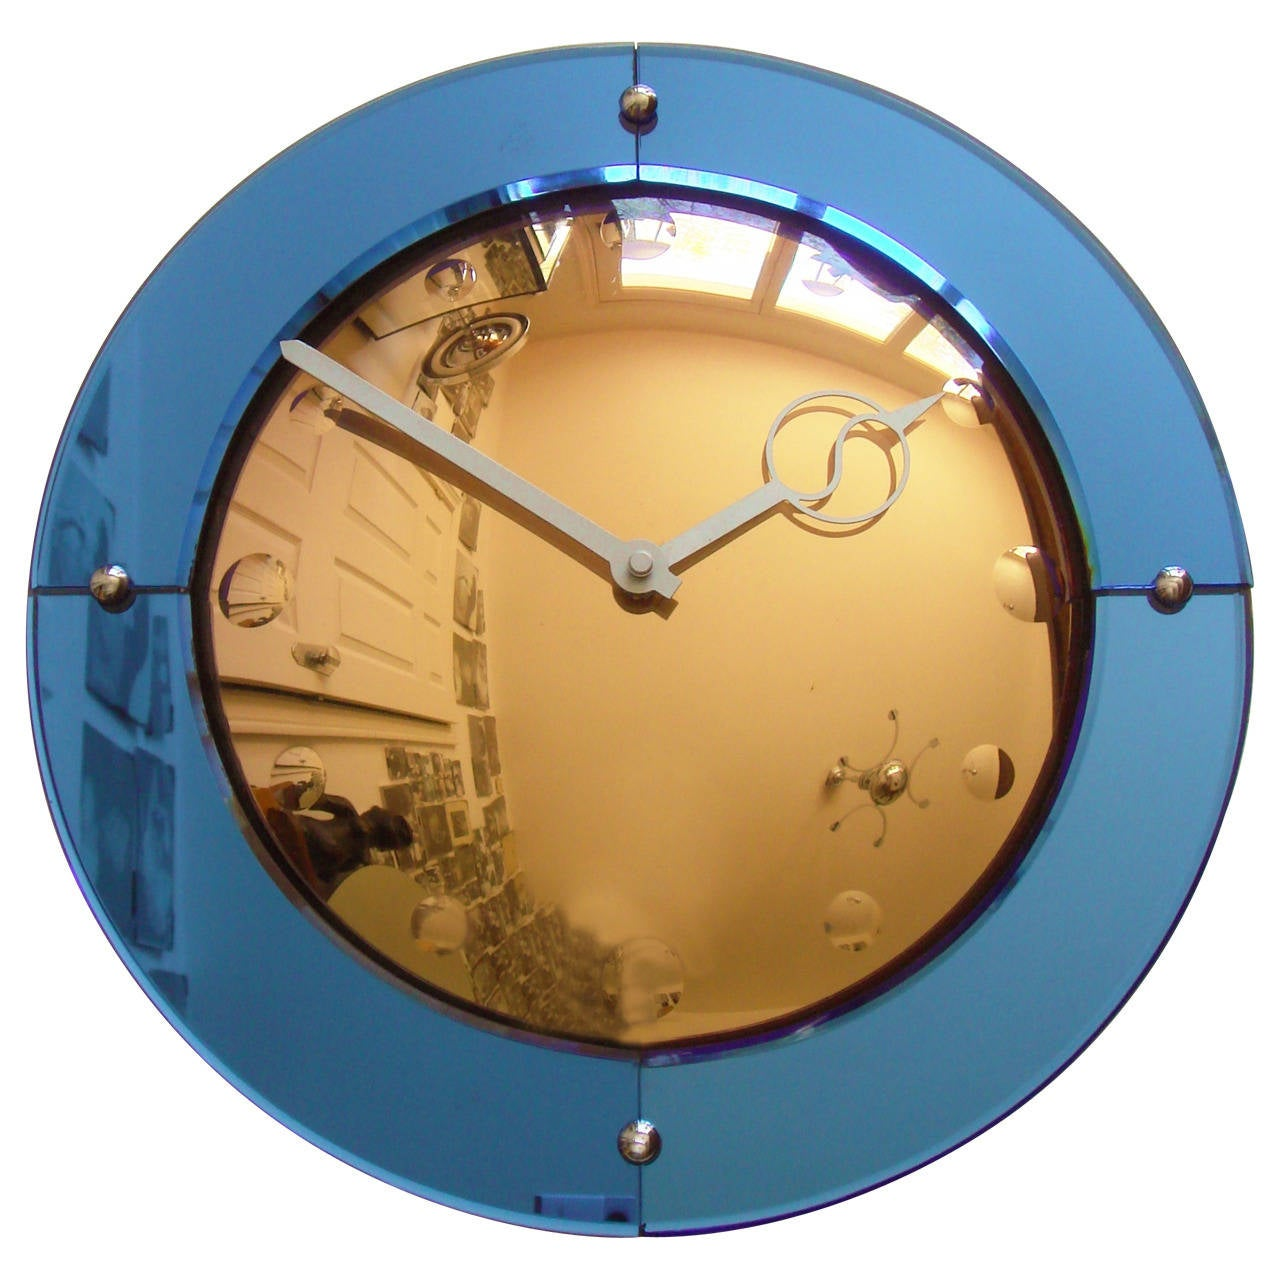 English Art Deco Convex Peach And Cobalt Mirror U0027Venusu0027 Wall Clock By  Smiths For Pictures Gallery